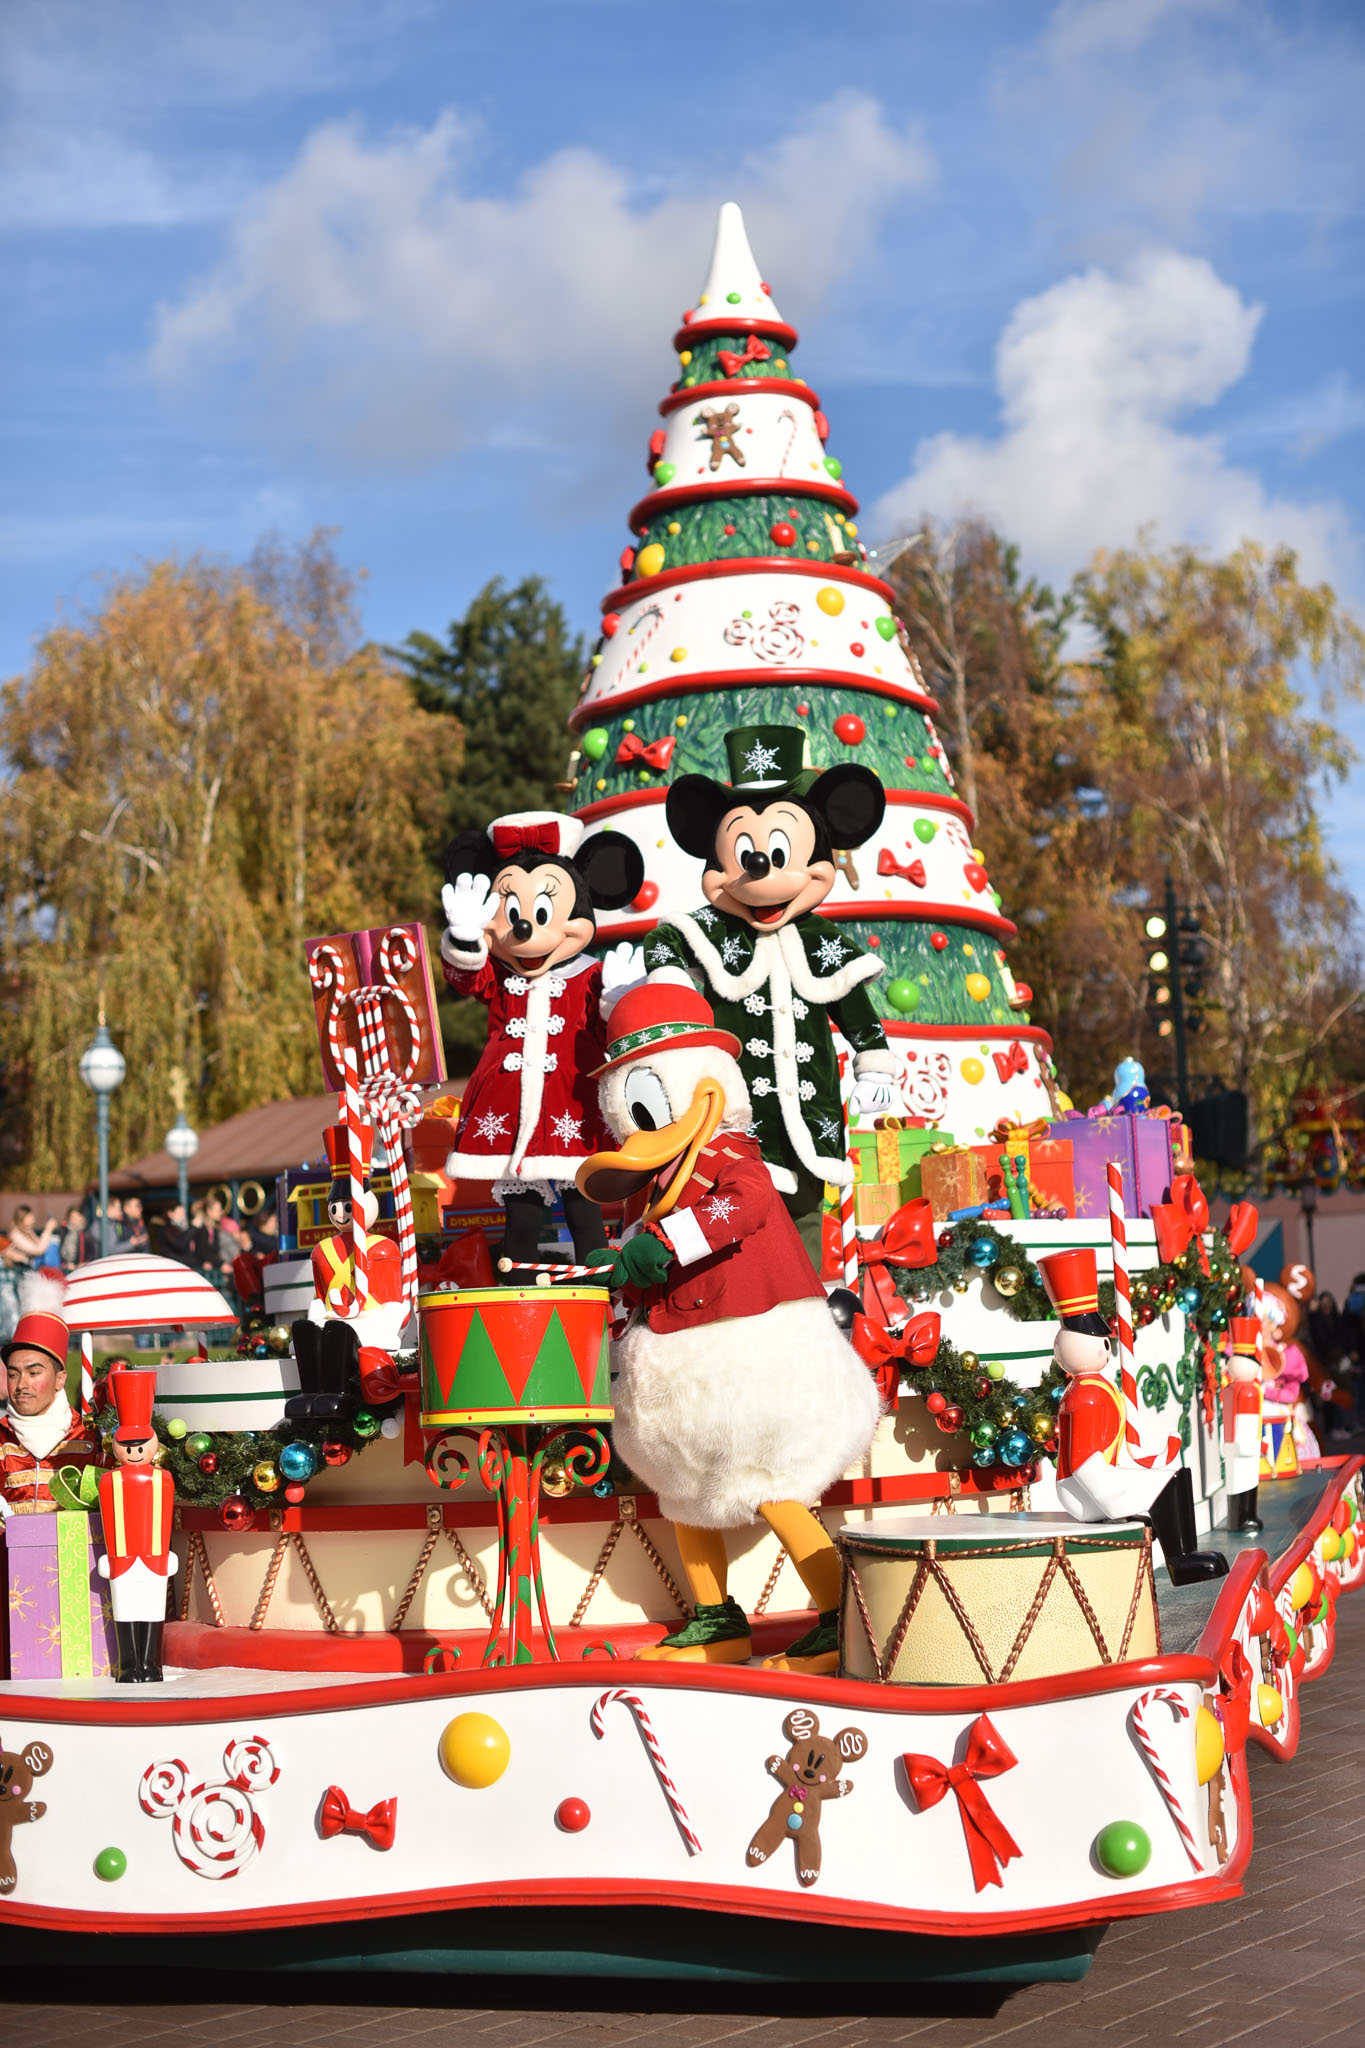 disneylandparis noel 2017